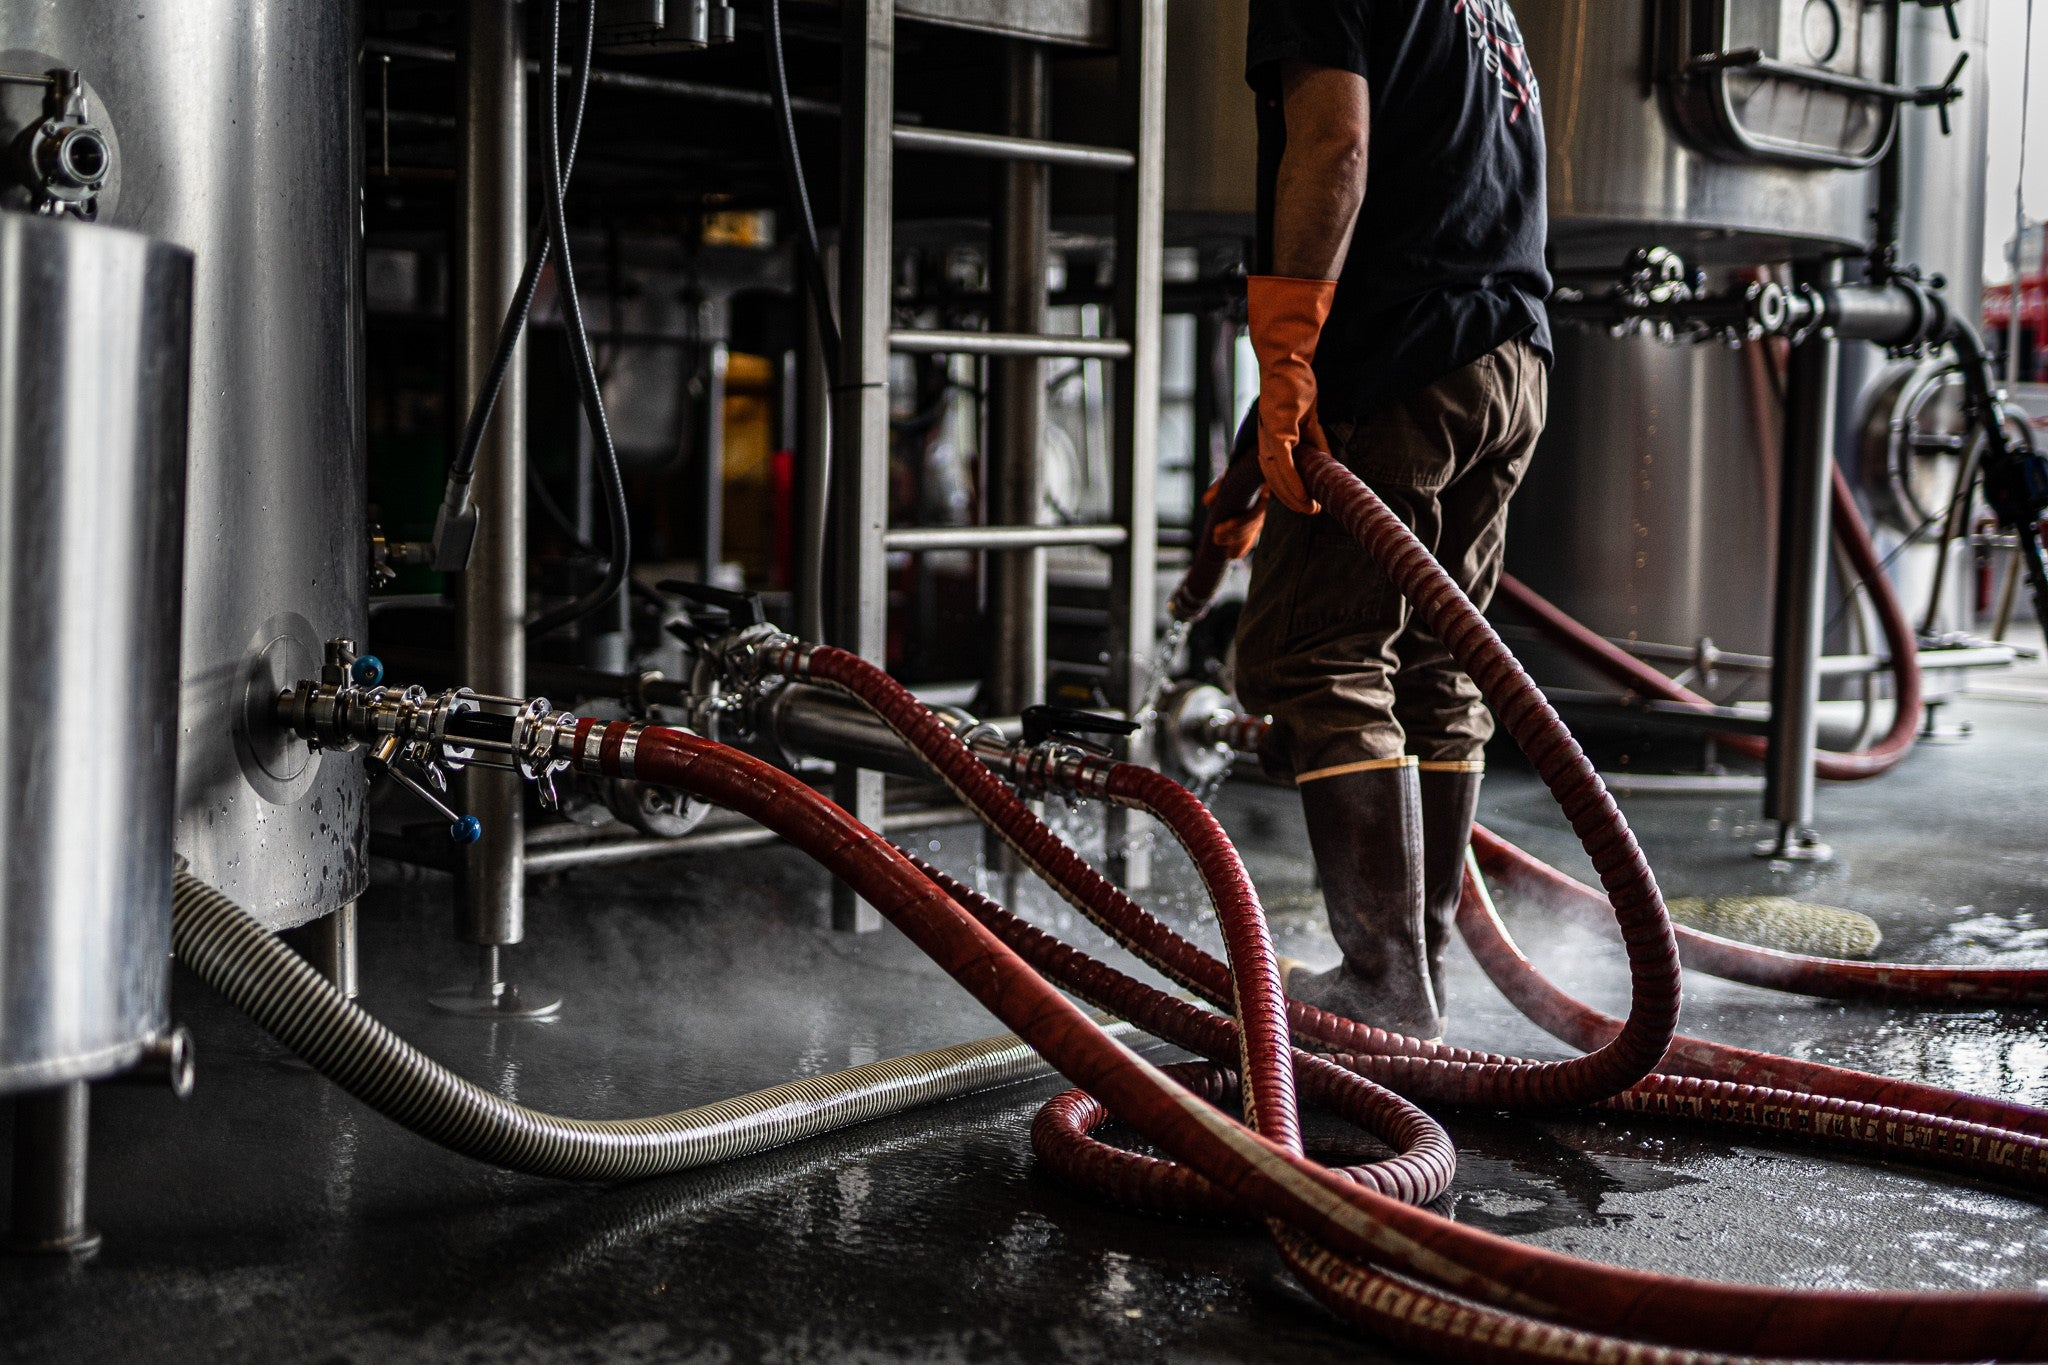 Wide Ride brewer working with red hose